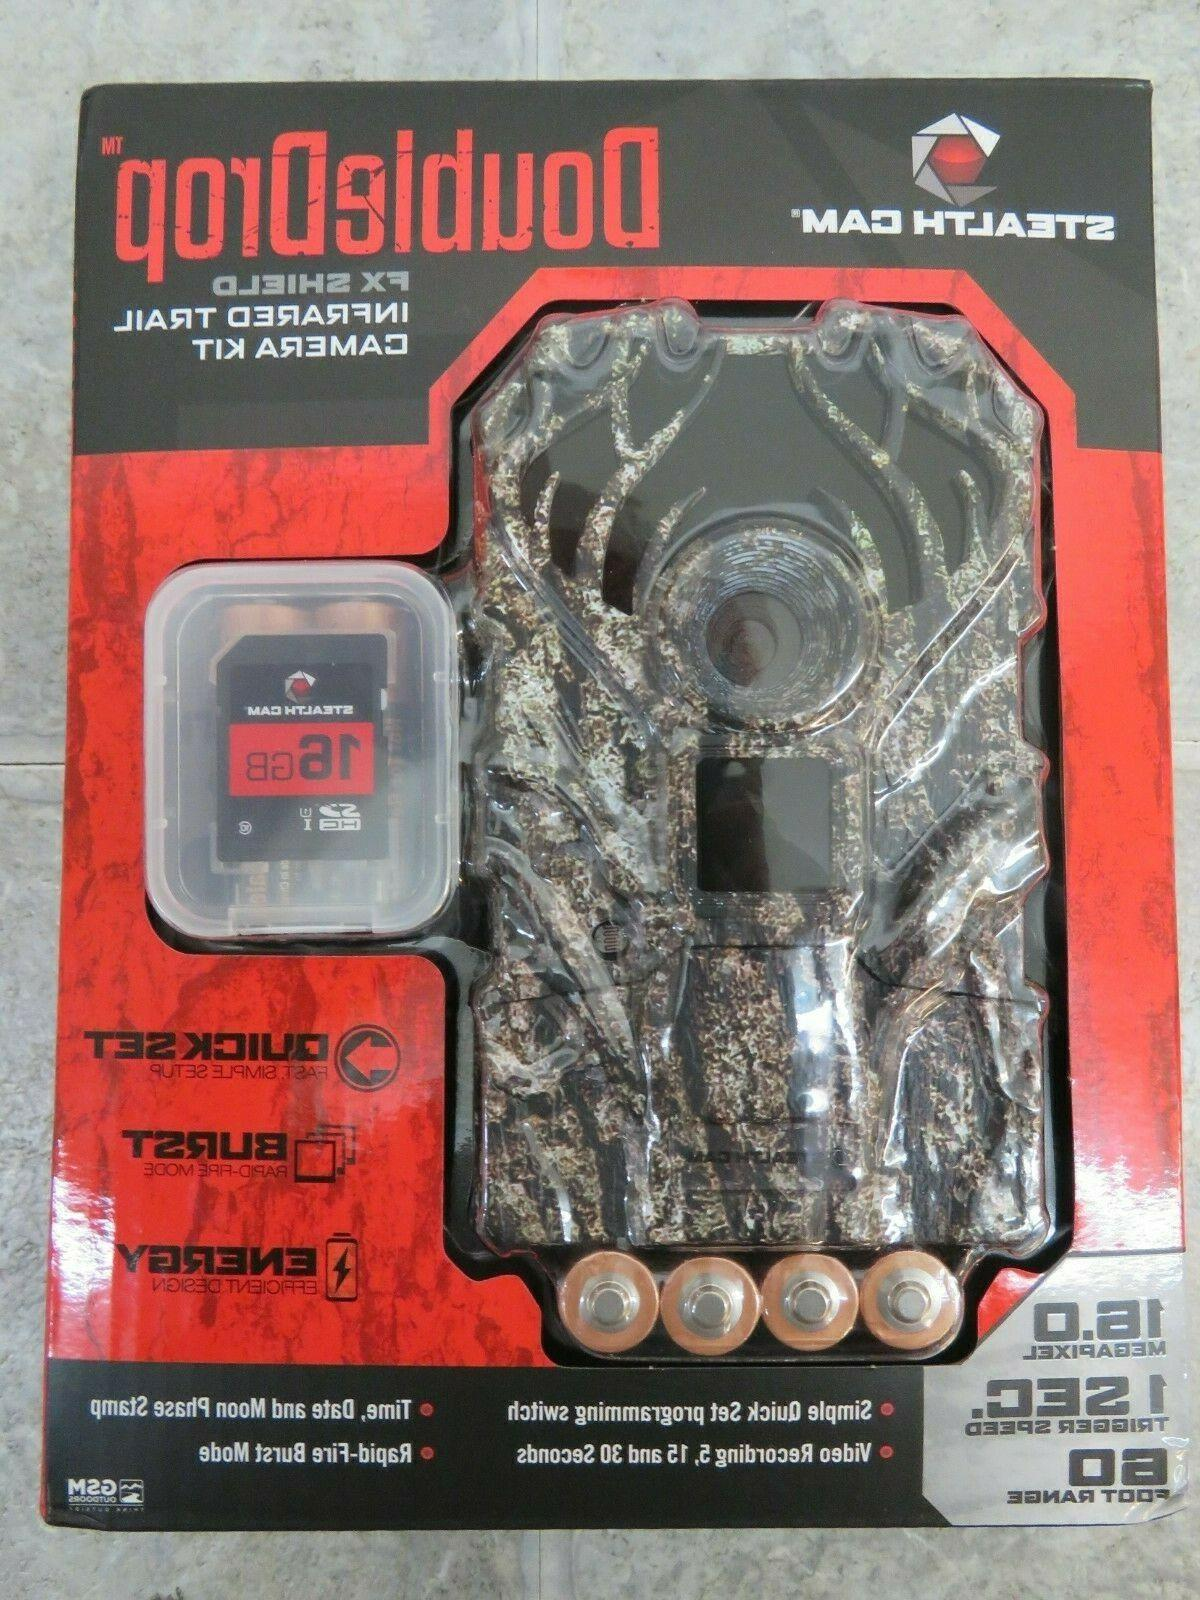 doubledrop ir trail camera package 16mp stc